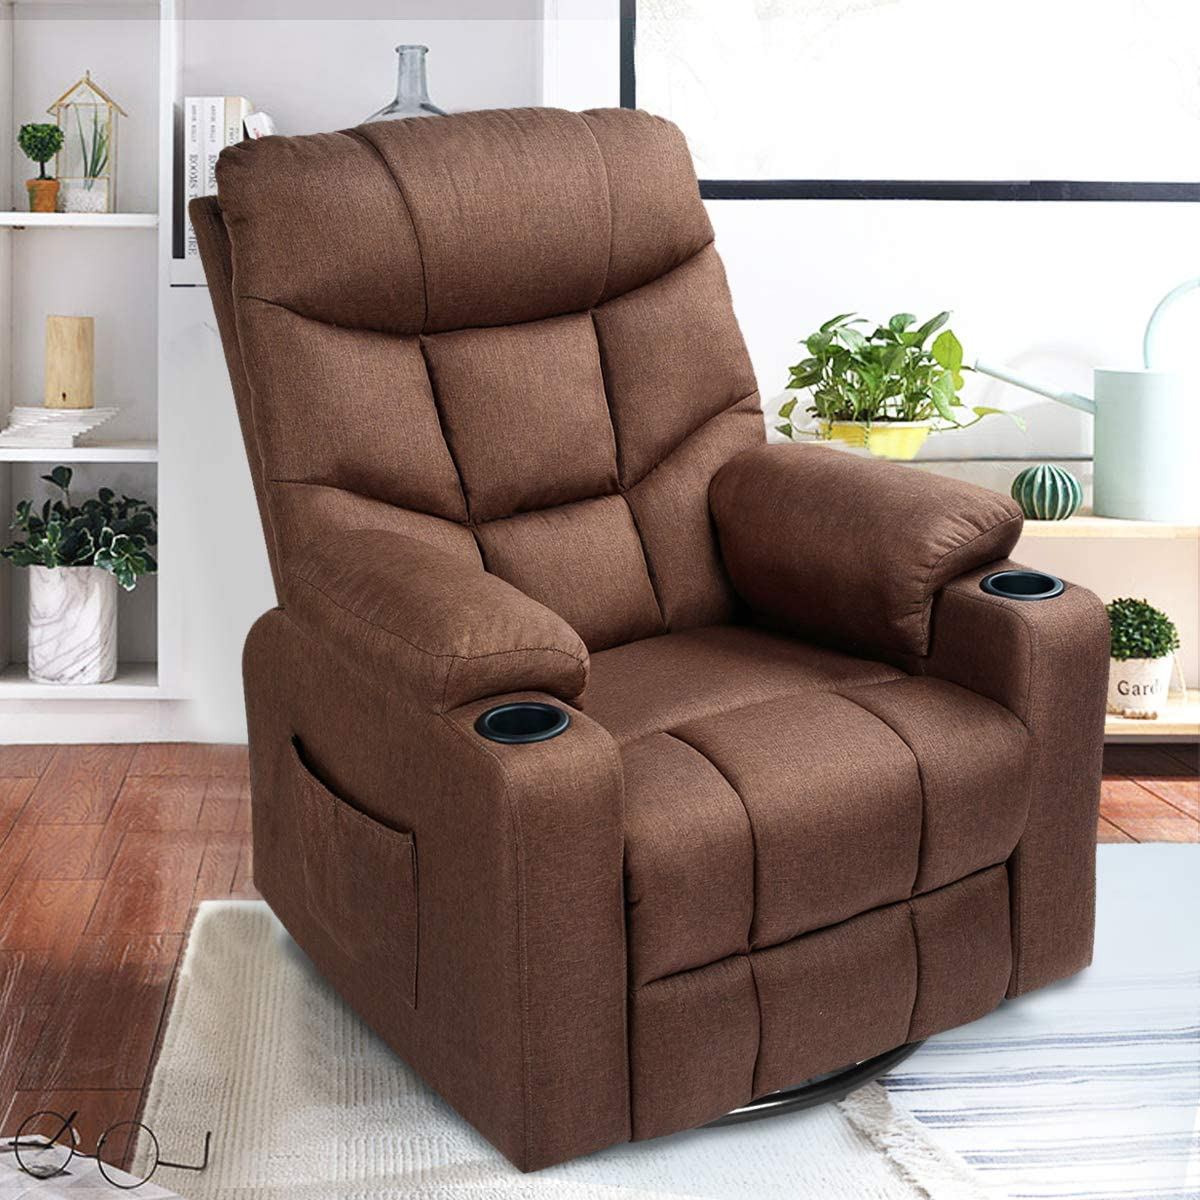 71CPa%2B8SBqL. AC SL1200 - What Are The Best Living Room Chair For Lower Back Pain - ChairPicks